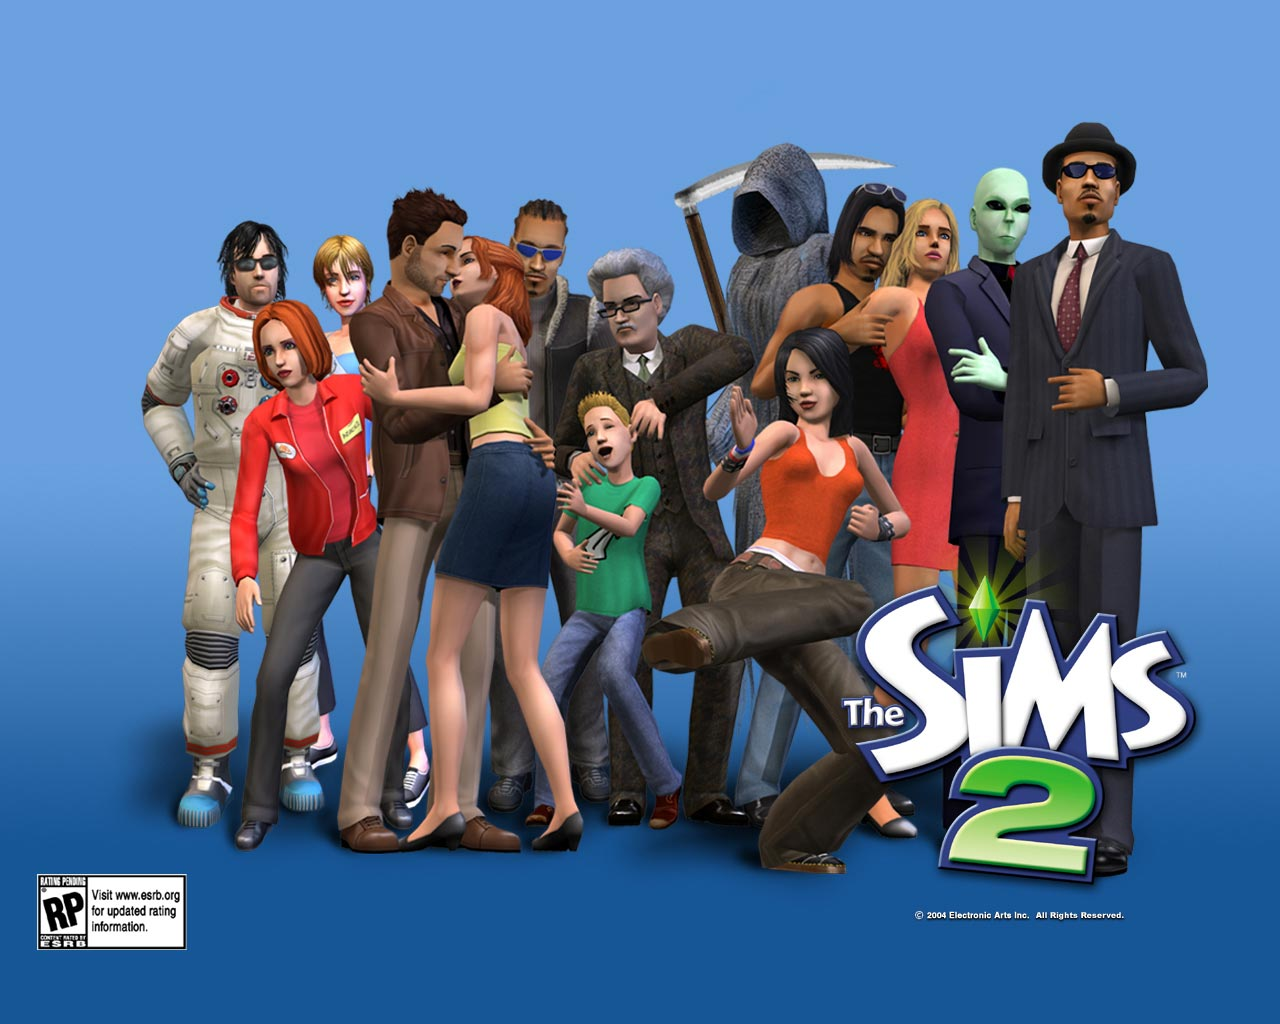 the sims 2 free download full version for pc windows 7